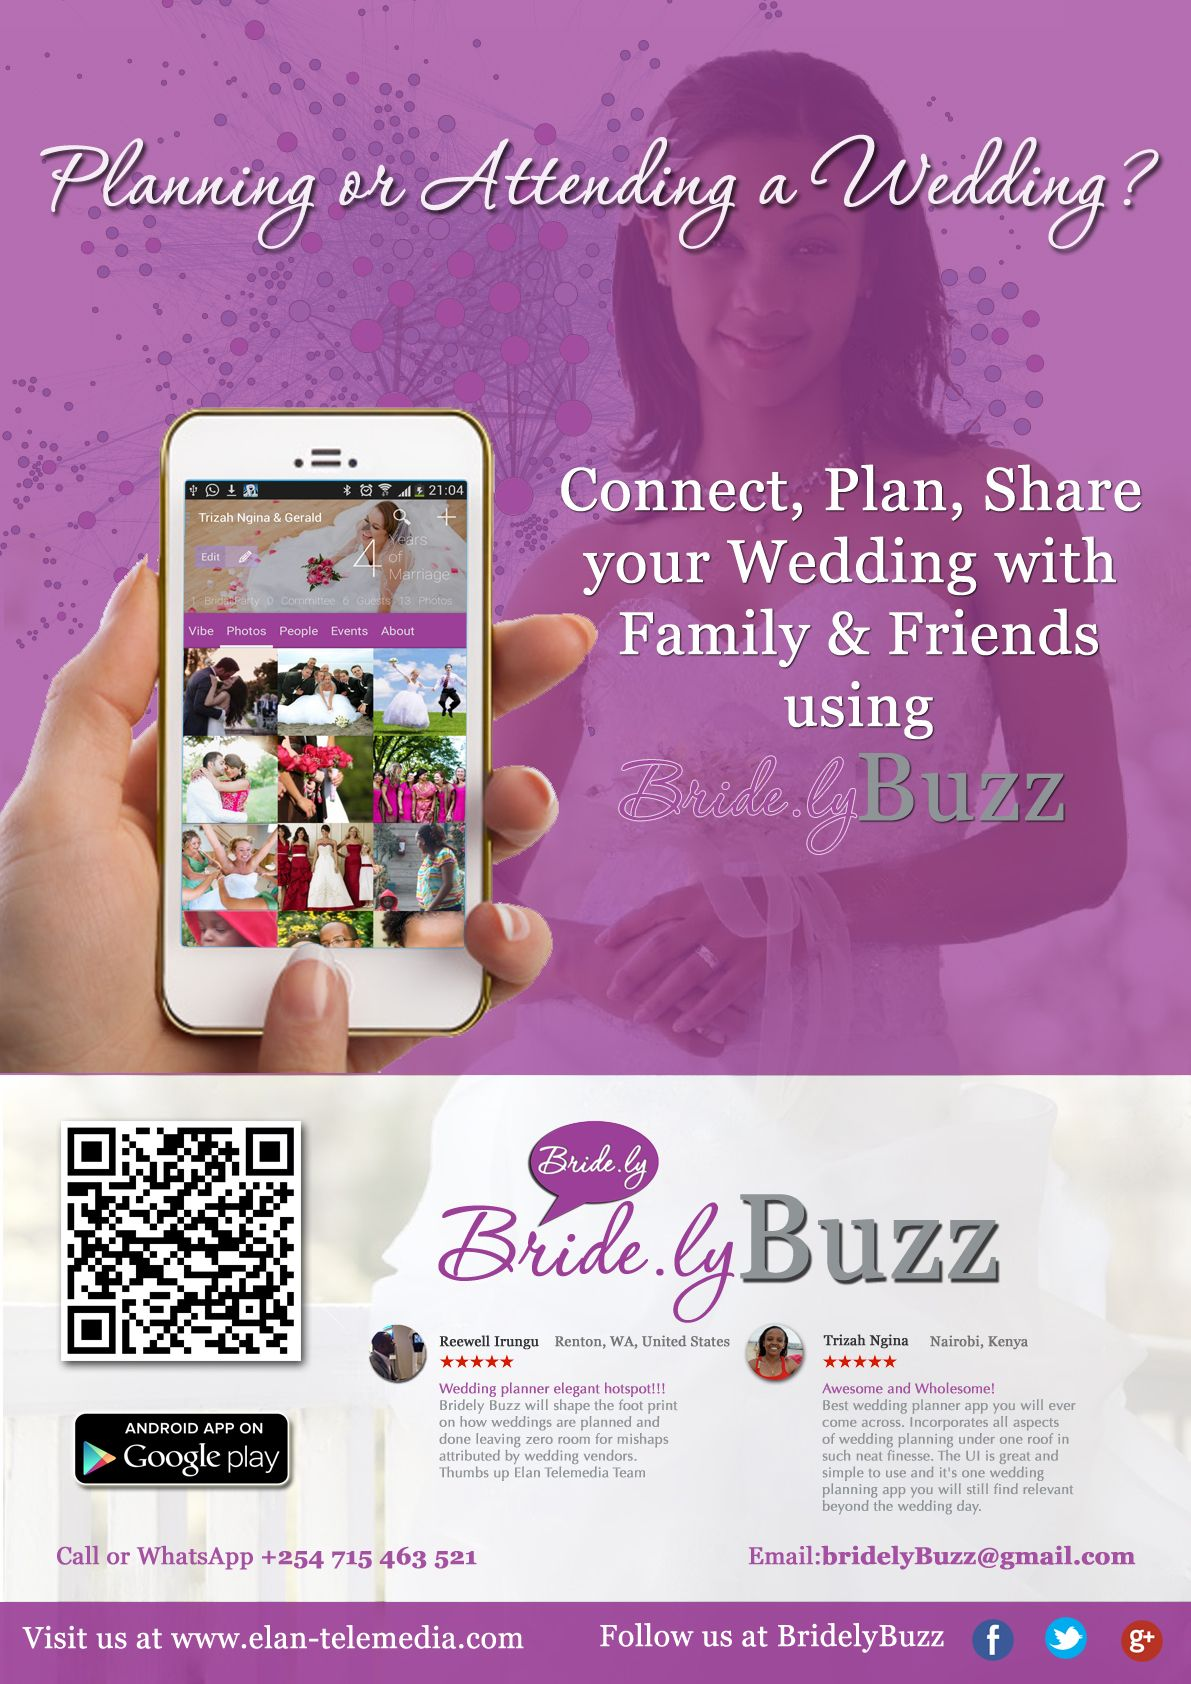 Connect Plan Share Your Wedding With Family And Friends Using Bridely Buzz Wedding Planner App Wedding Planner App Wedding Planner Wedding Apps